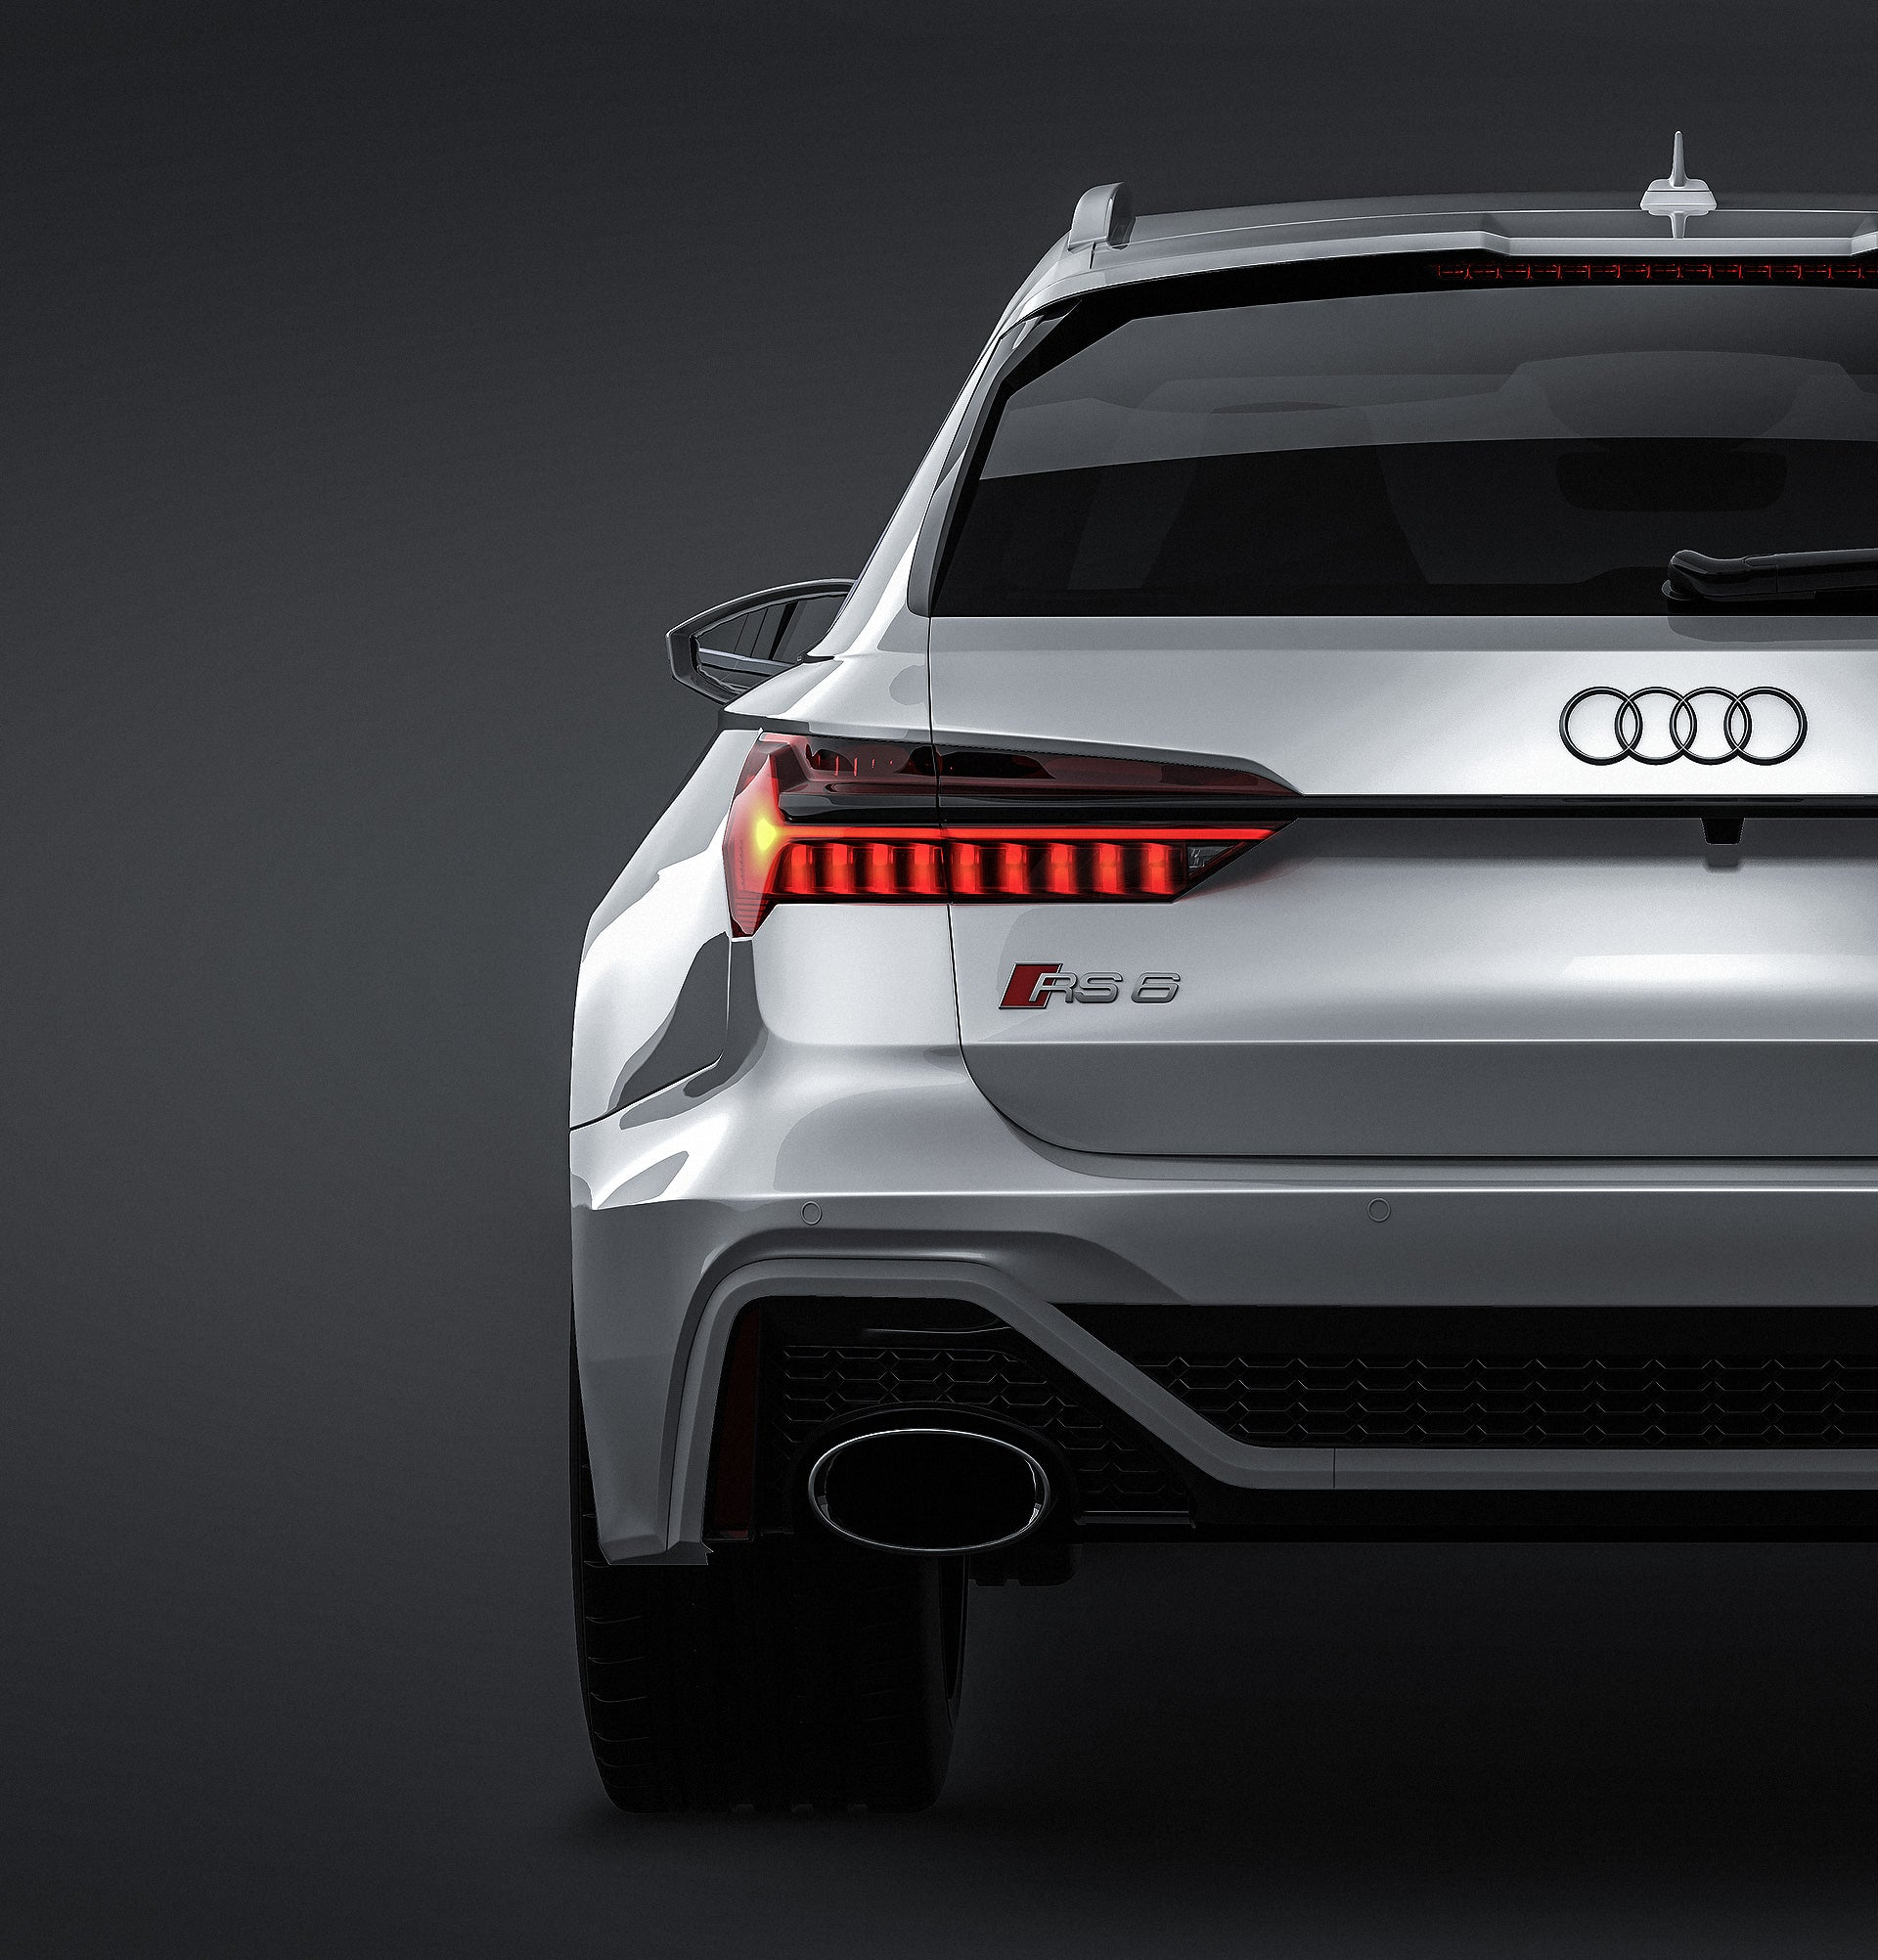 Audi RS6 Avant 2020 glossy finish - all sides Car Mockup Template.psd